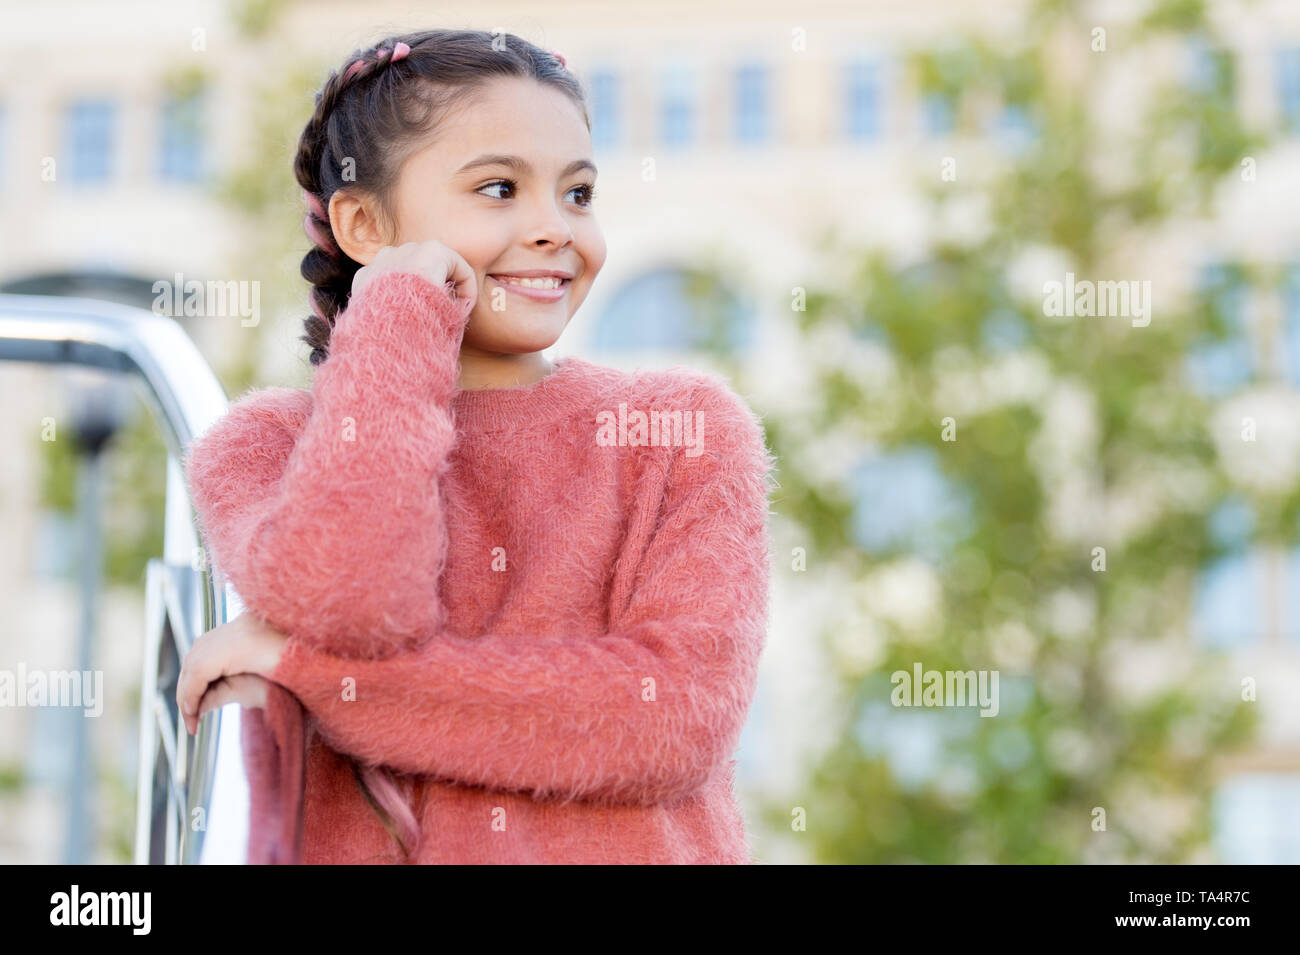 Vacation and leisure. Weekend events for kids. Entertainment for children. Leisure fun ideas. Event overview. Leisure options. Free time and leisure. Girl urban background. Activities for teenagers. - Stock Image